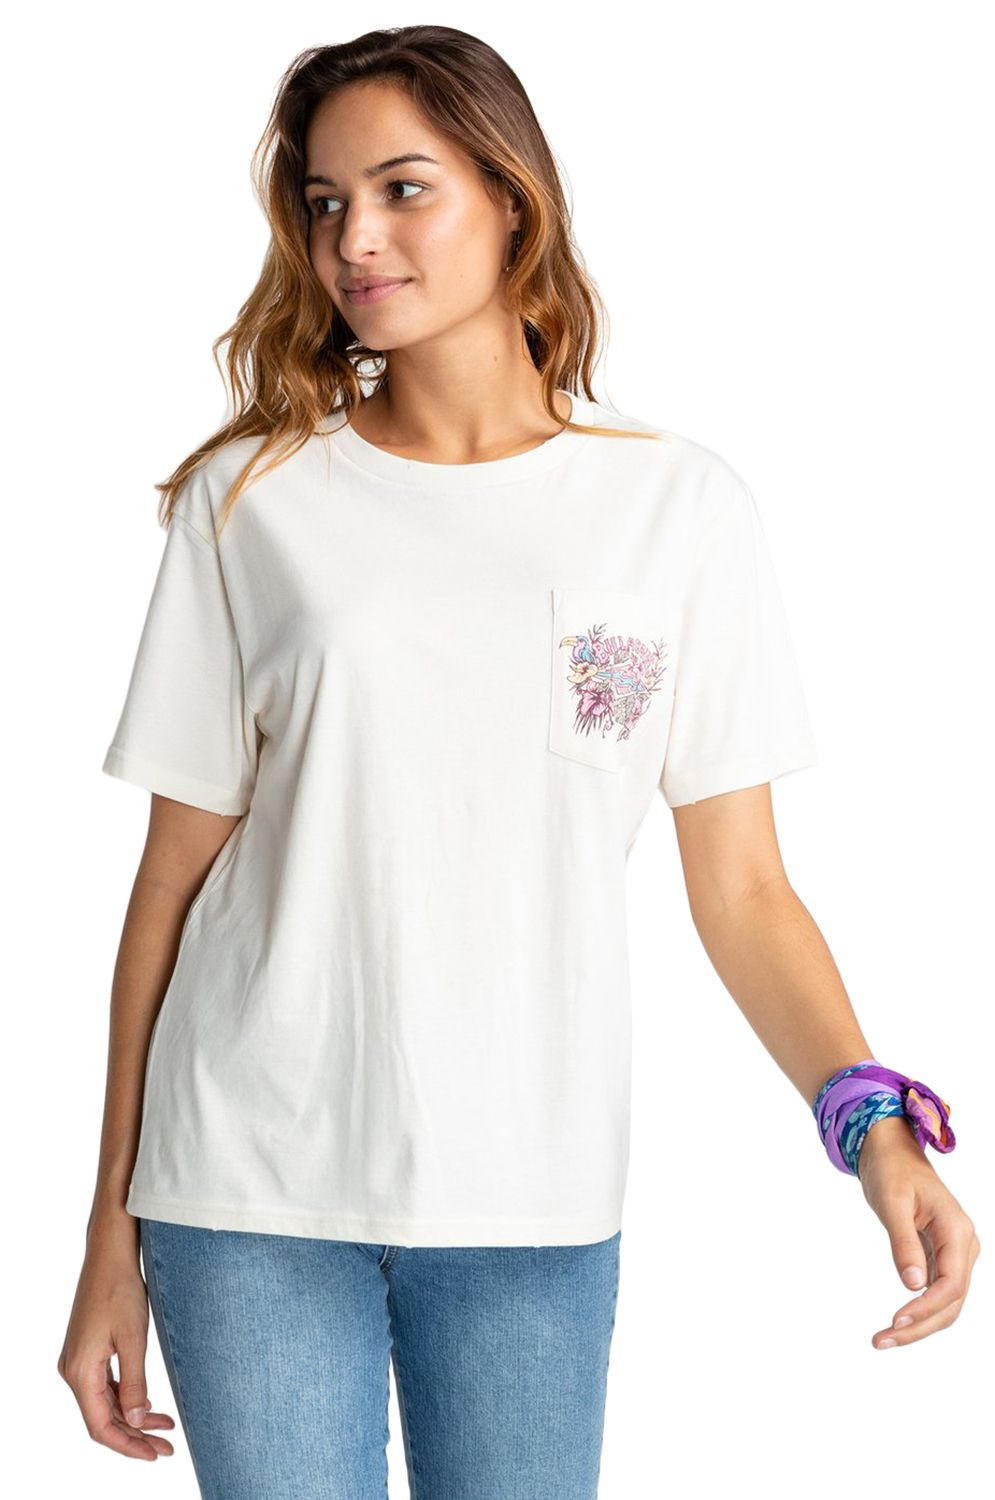 Billabong T-Shirt FLORAL SOURCE Cool Wip